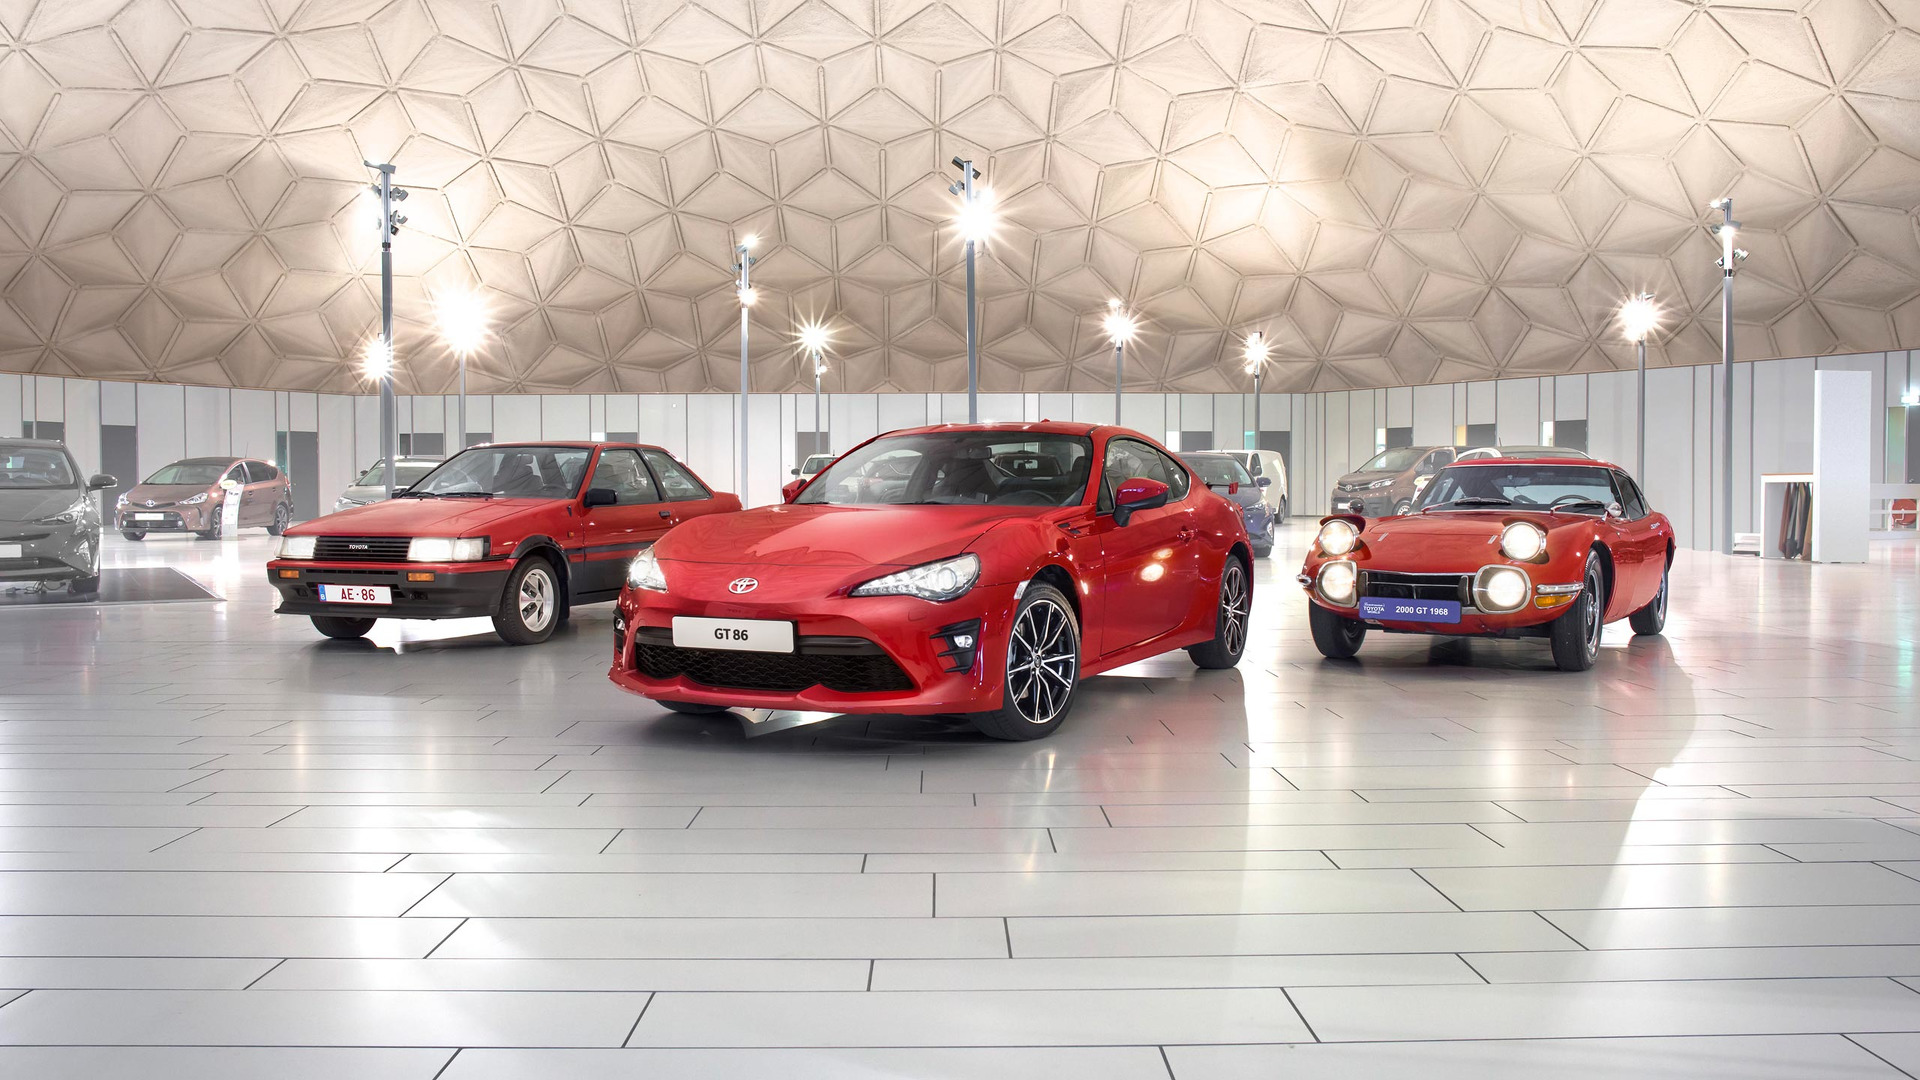 Alfa img showing gt mr2 stance background - Get To Know The 2017 Toyota 86 Via Massive 145 Image Gallery Product 2017 01 13 21 30 02